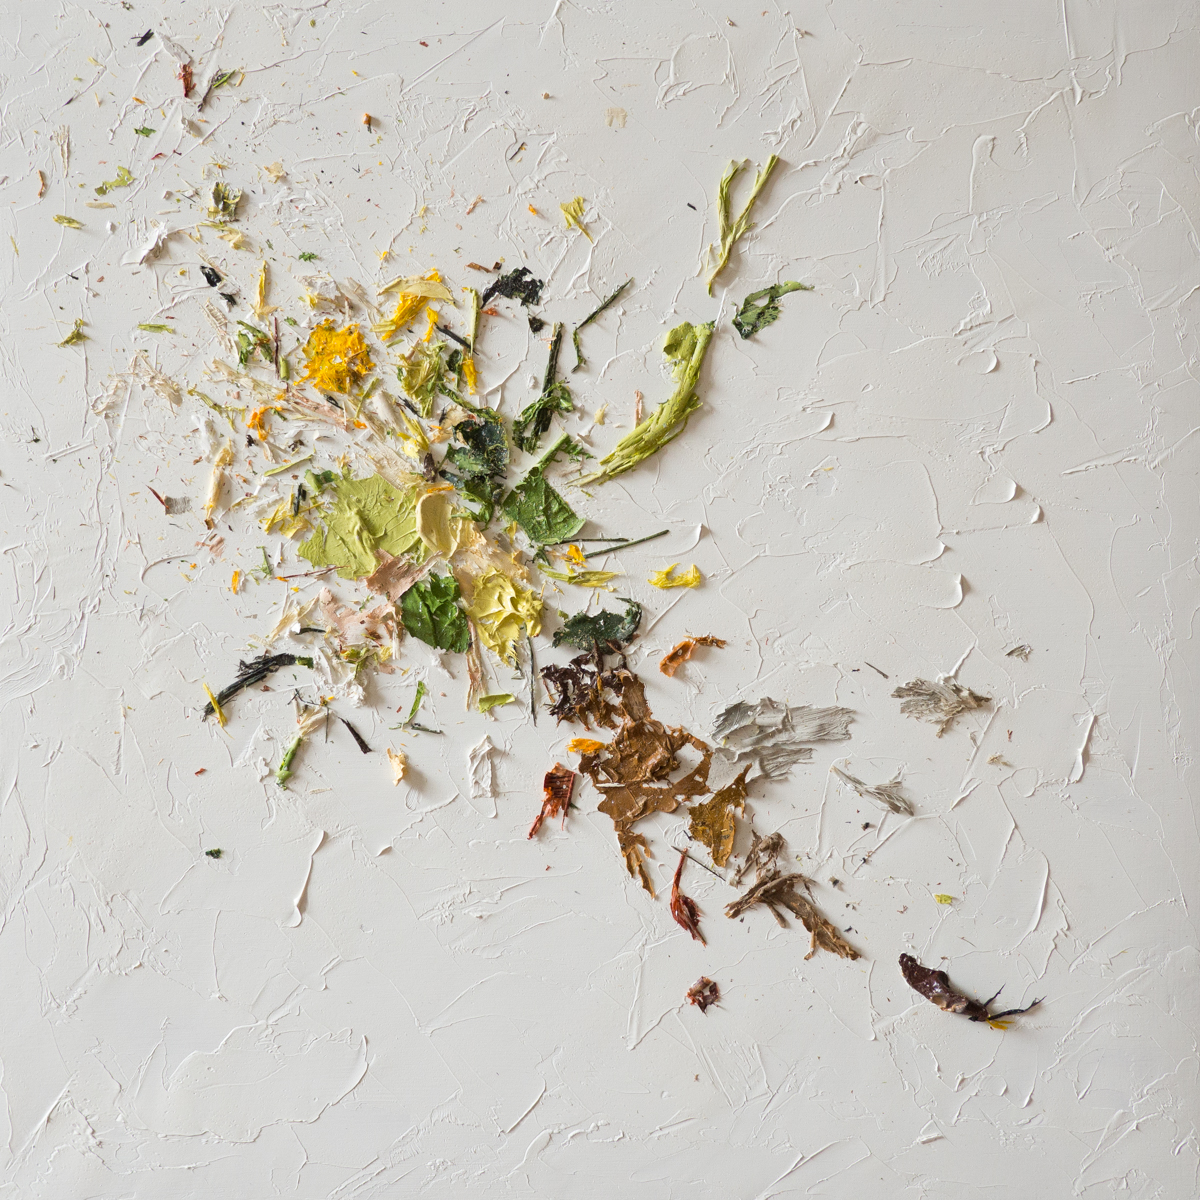 The Complexities of Emotions No.10   oils & oil paint scrapings on wood panel, 12 x 12